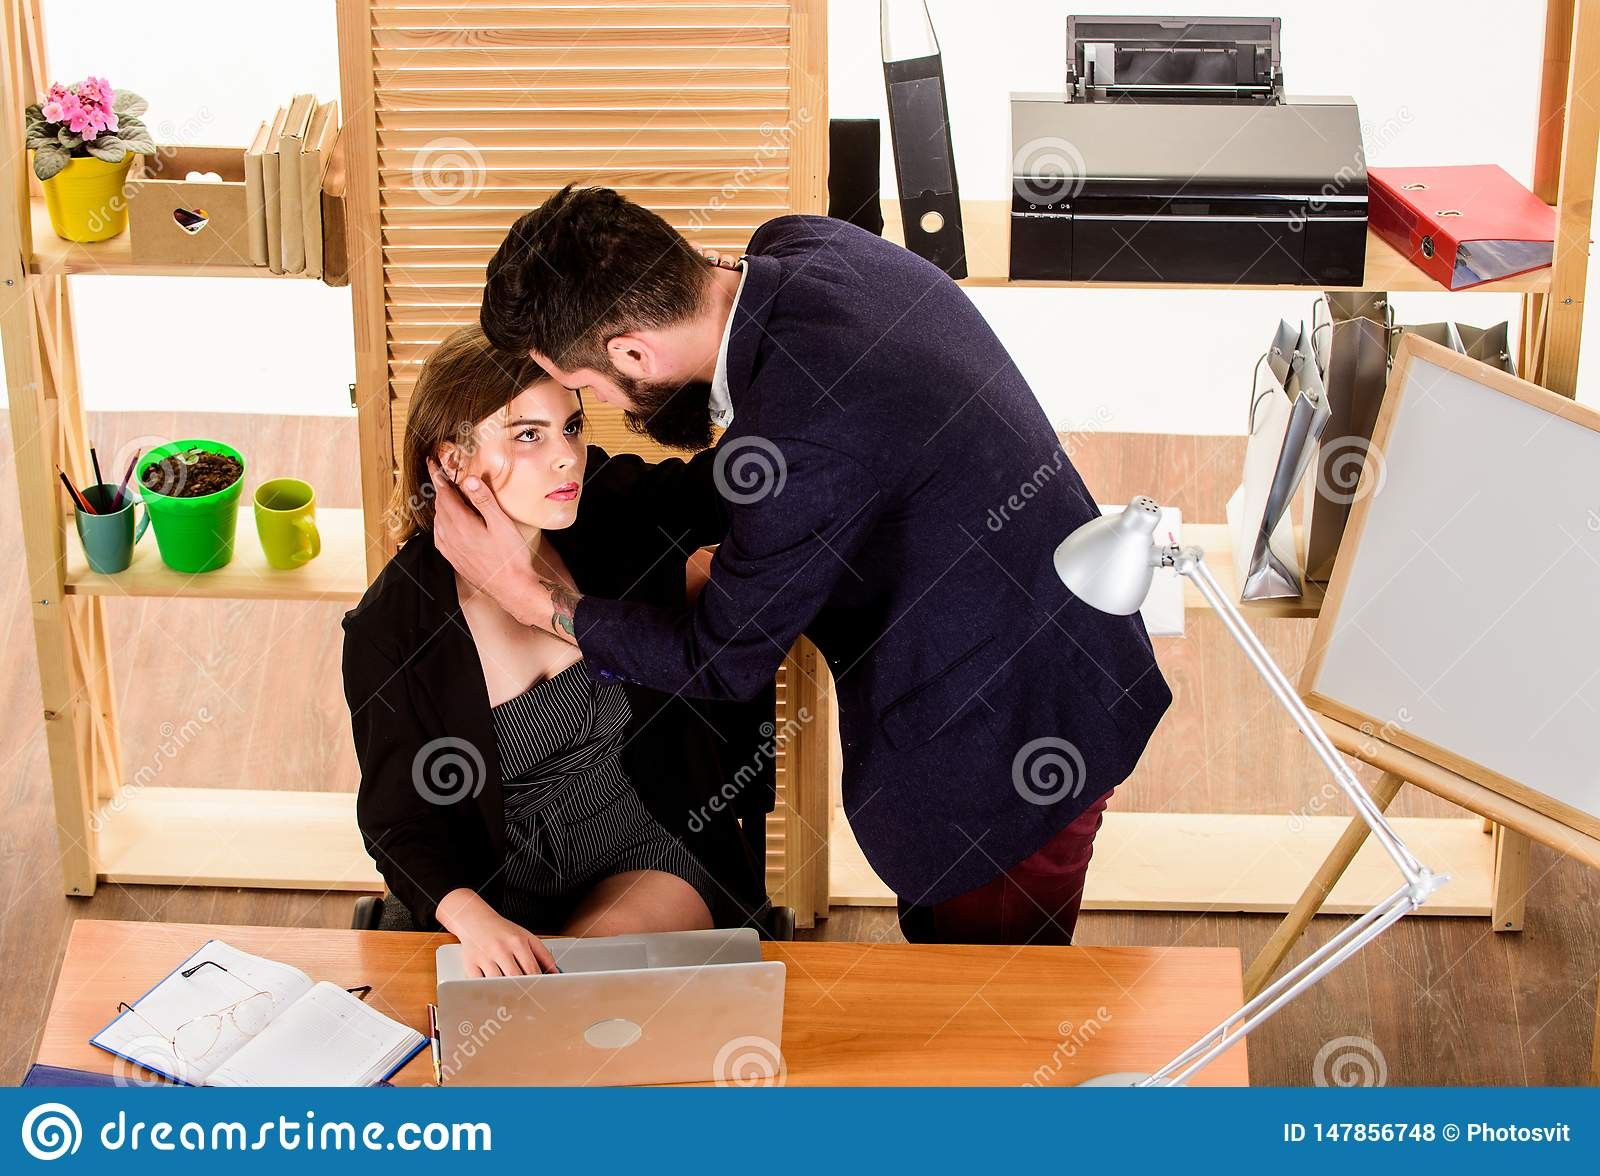 A little passion at work. Love affair of bearded man and sexy woman in office. Couple in love conducting affair at work